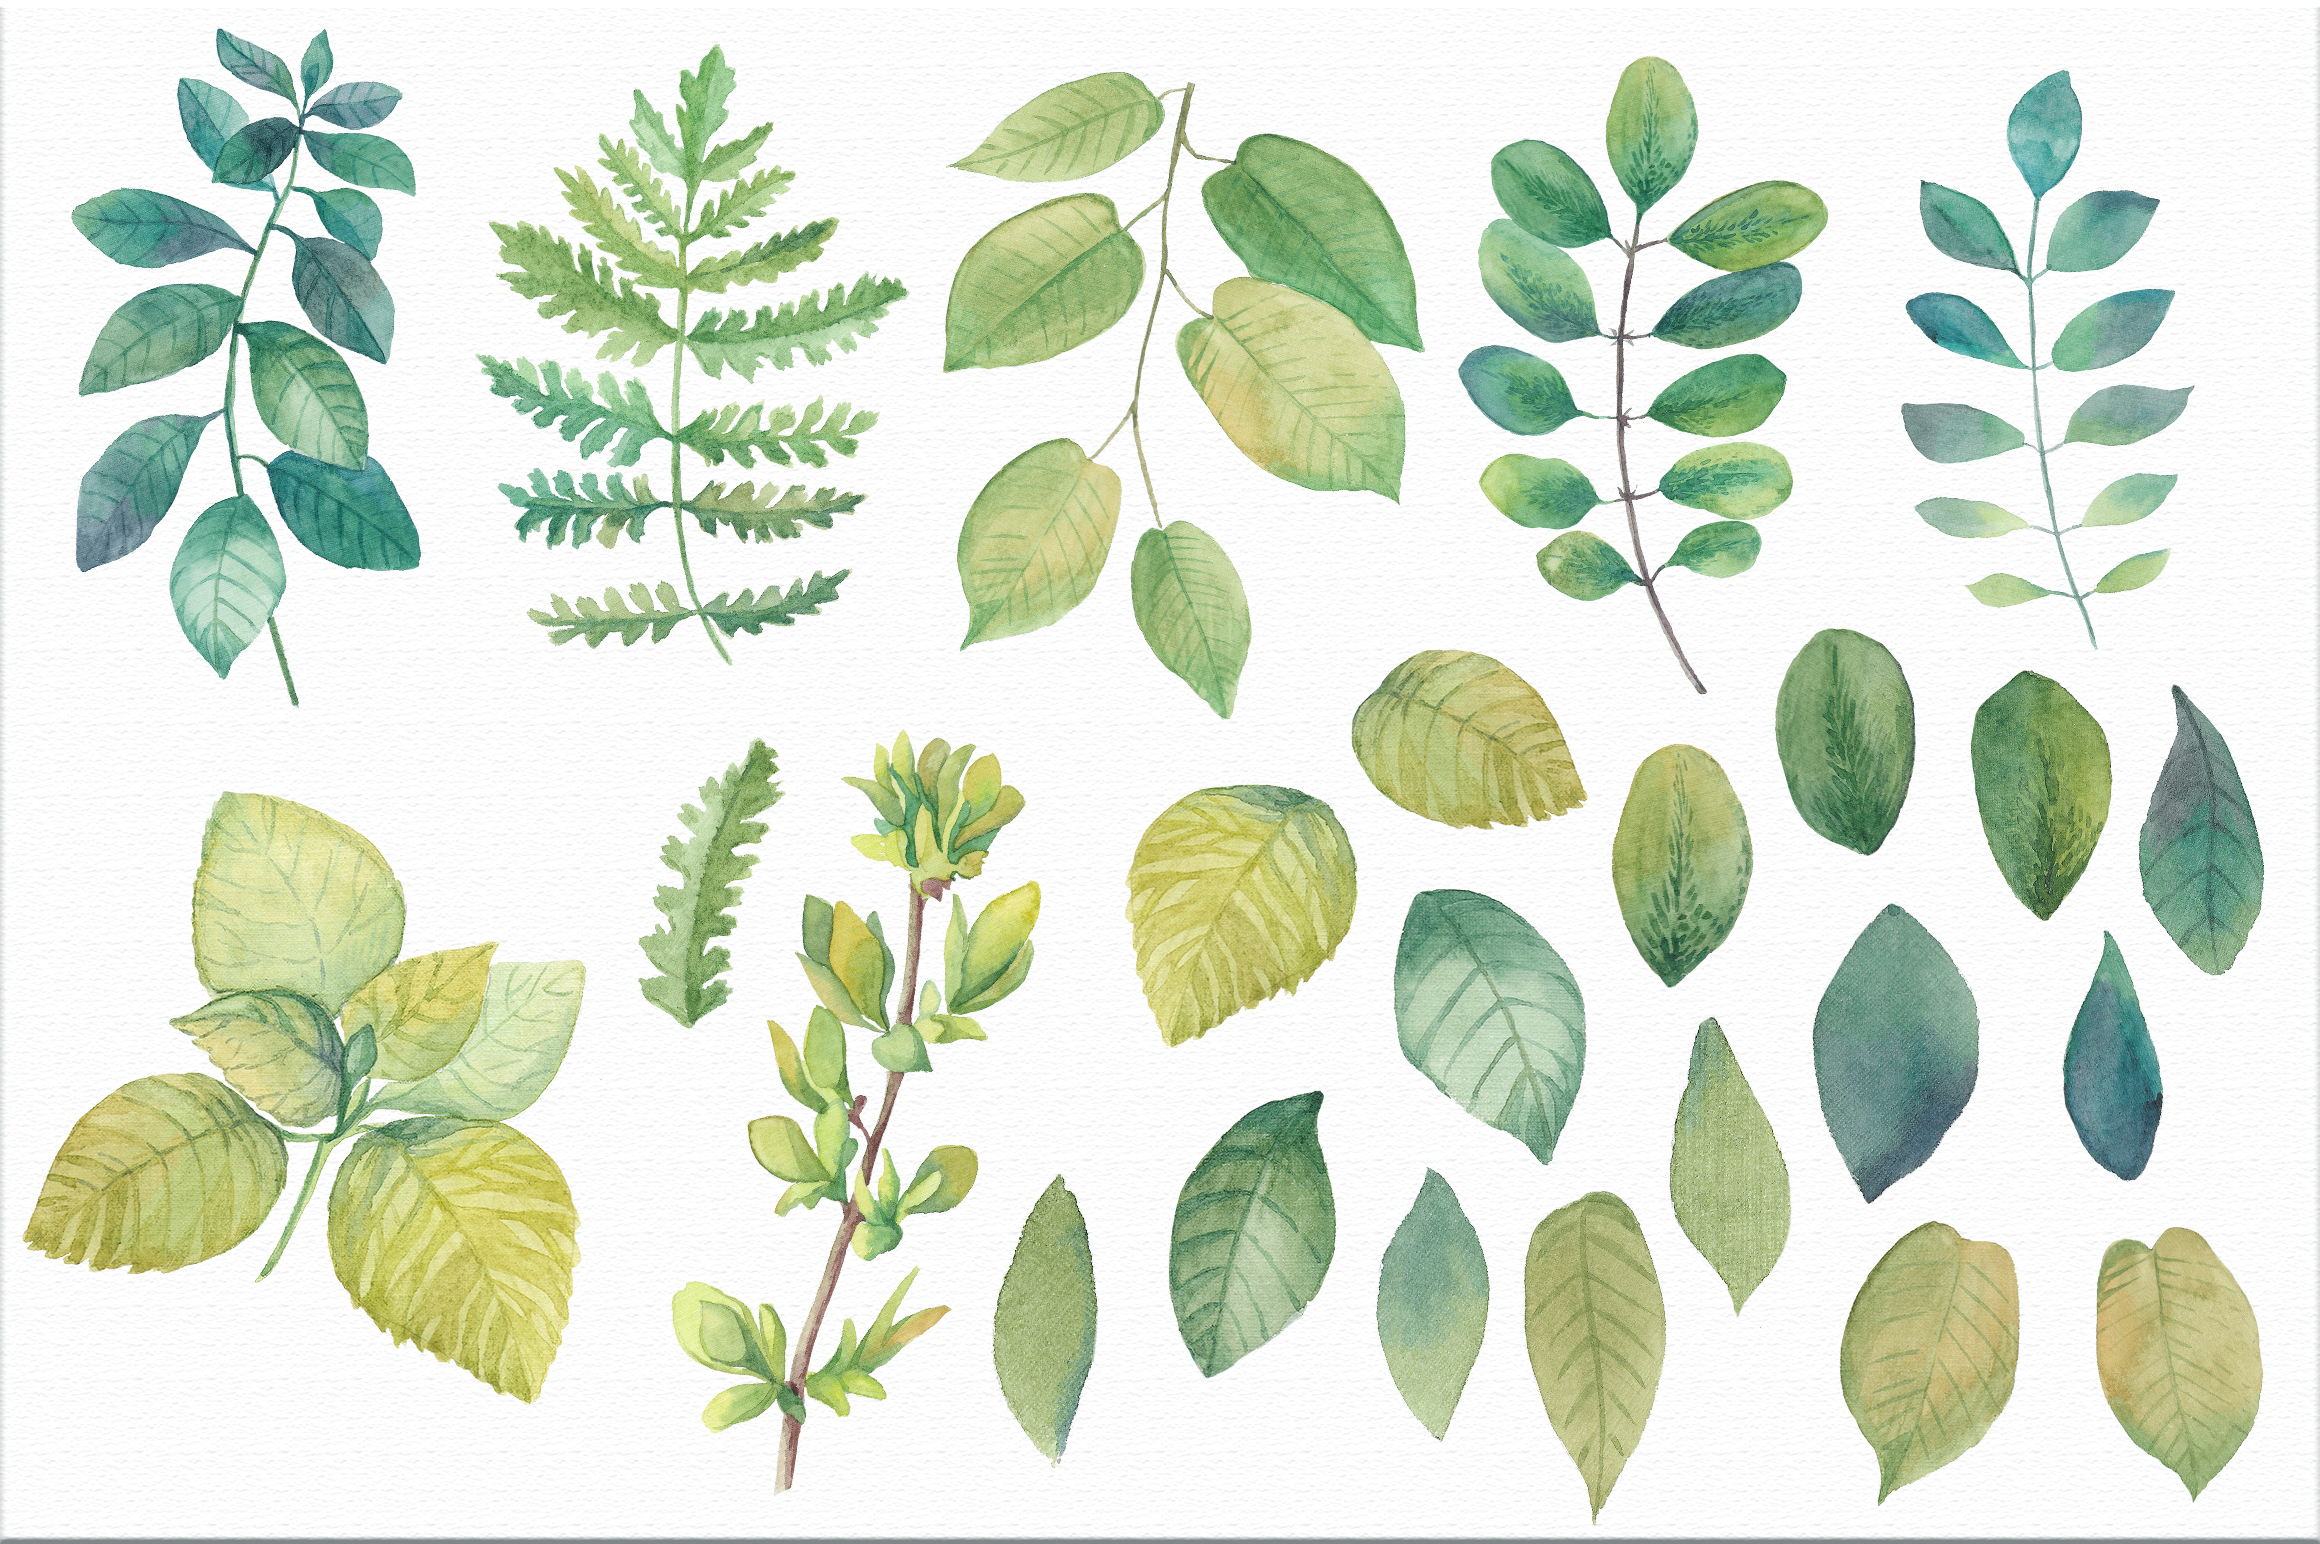 Watercolor leaves & branches example image 2